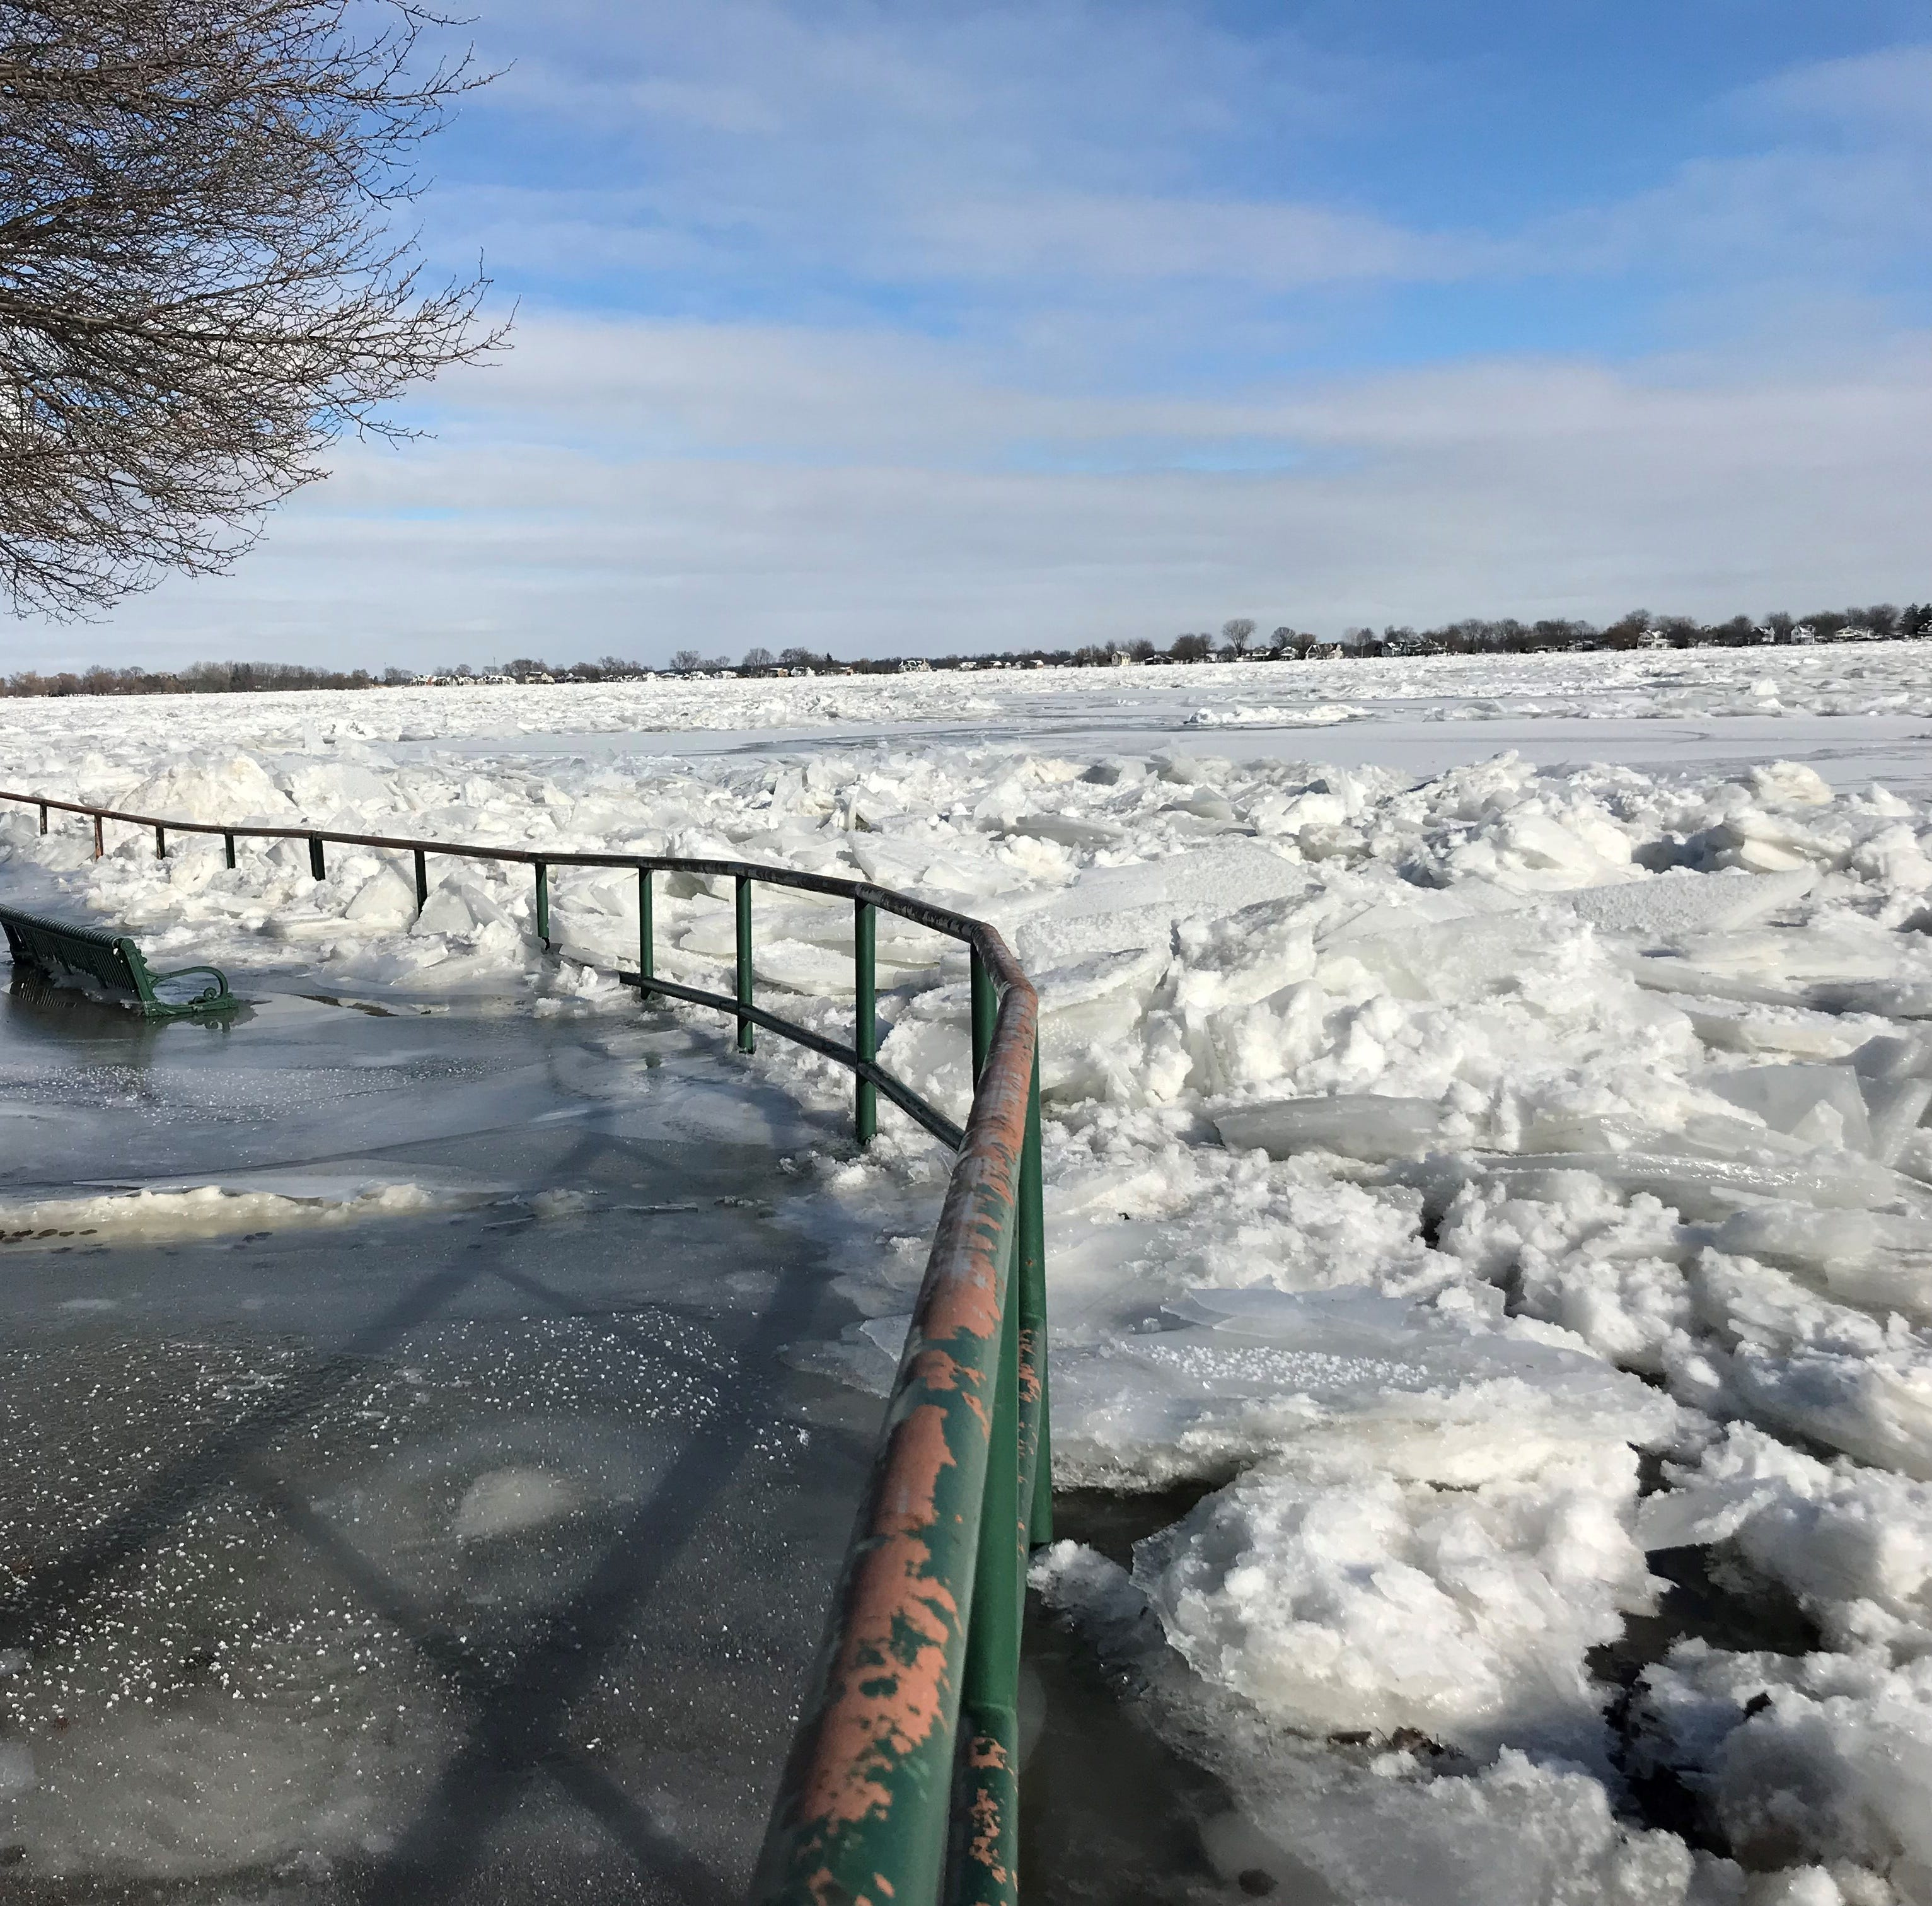 Coast Guard working to break ice jam in St. Clair River